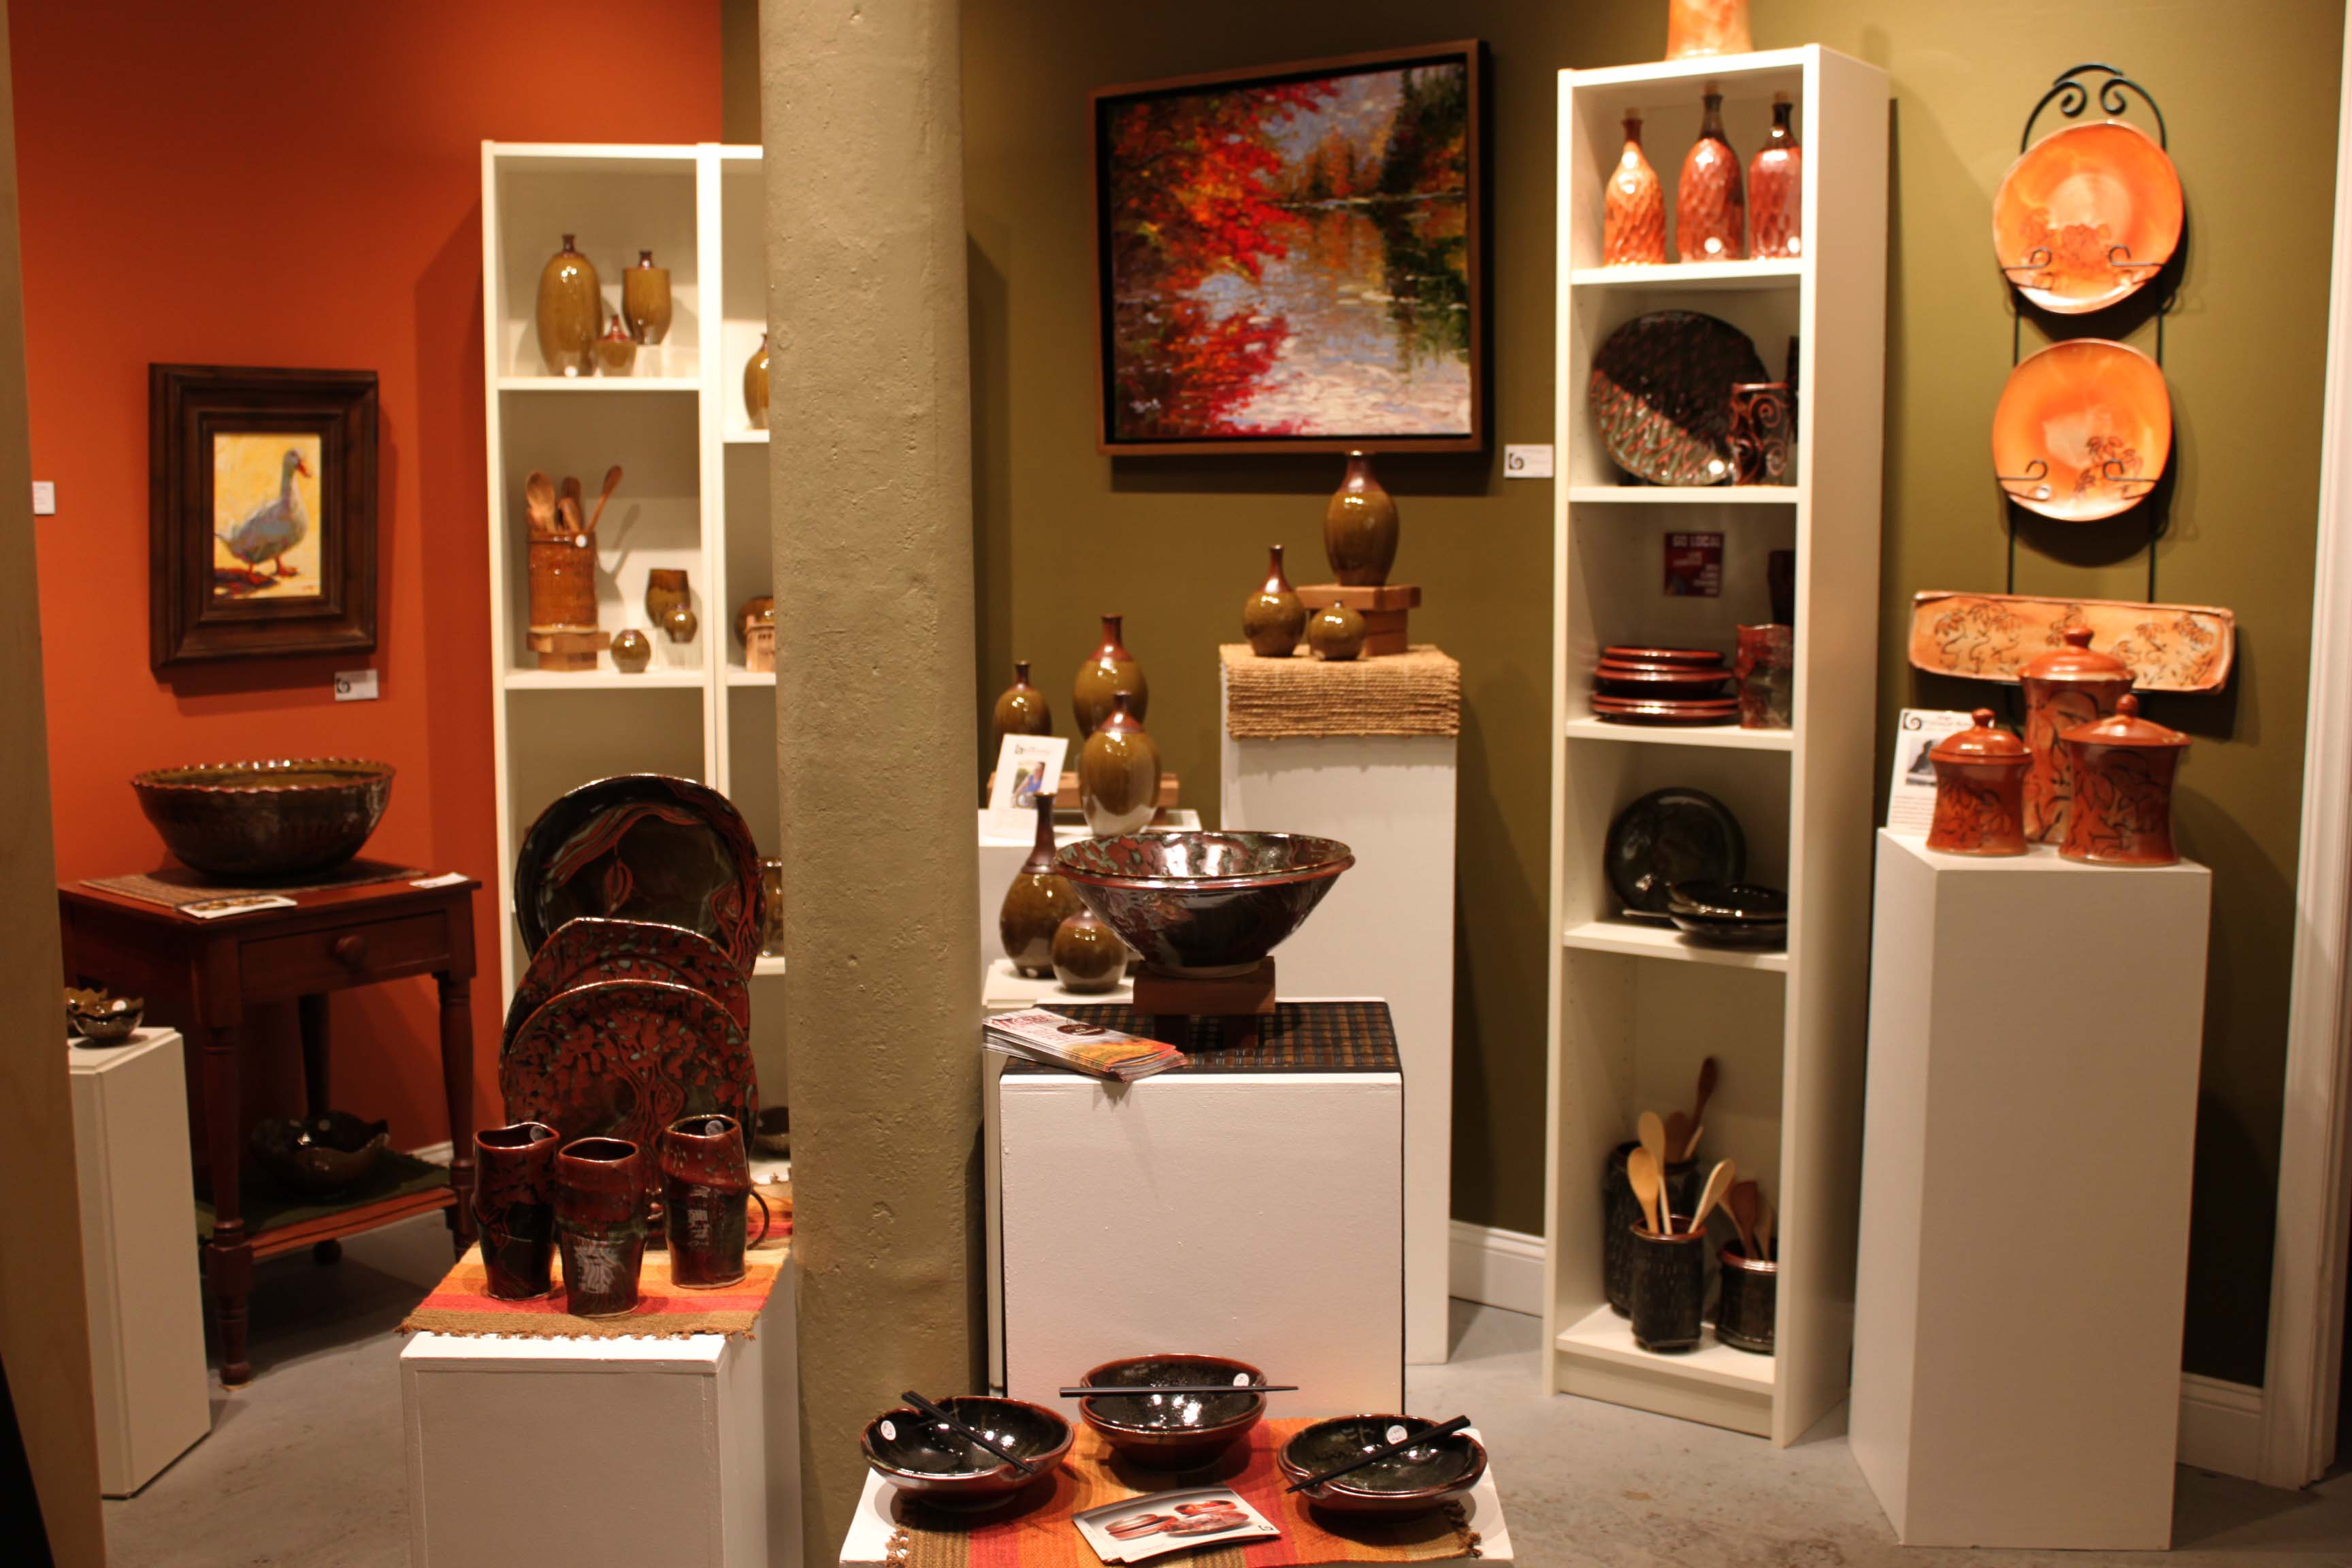 The village potters footer2 local flavor avl visit explore art scene asheville